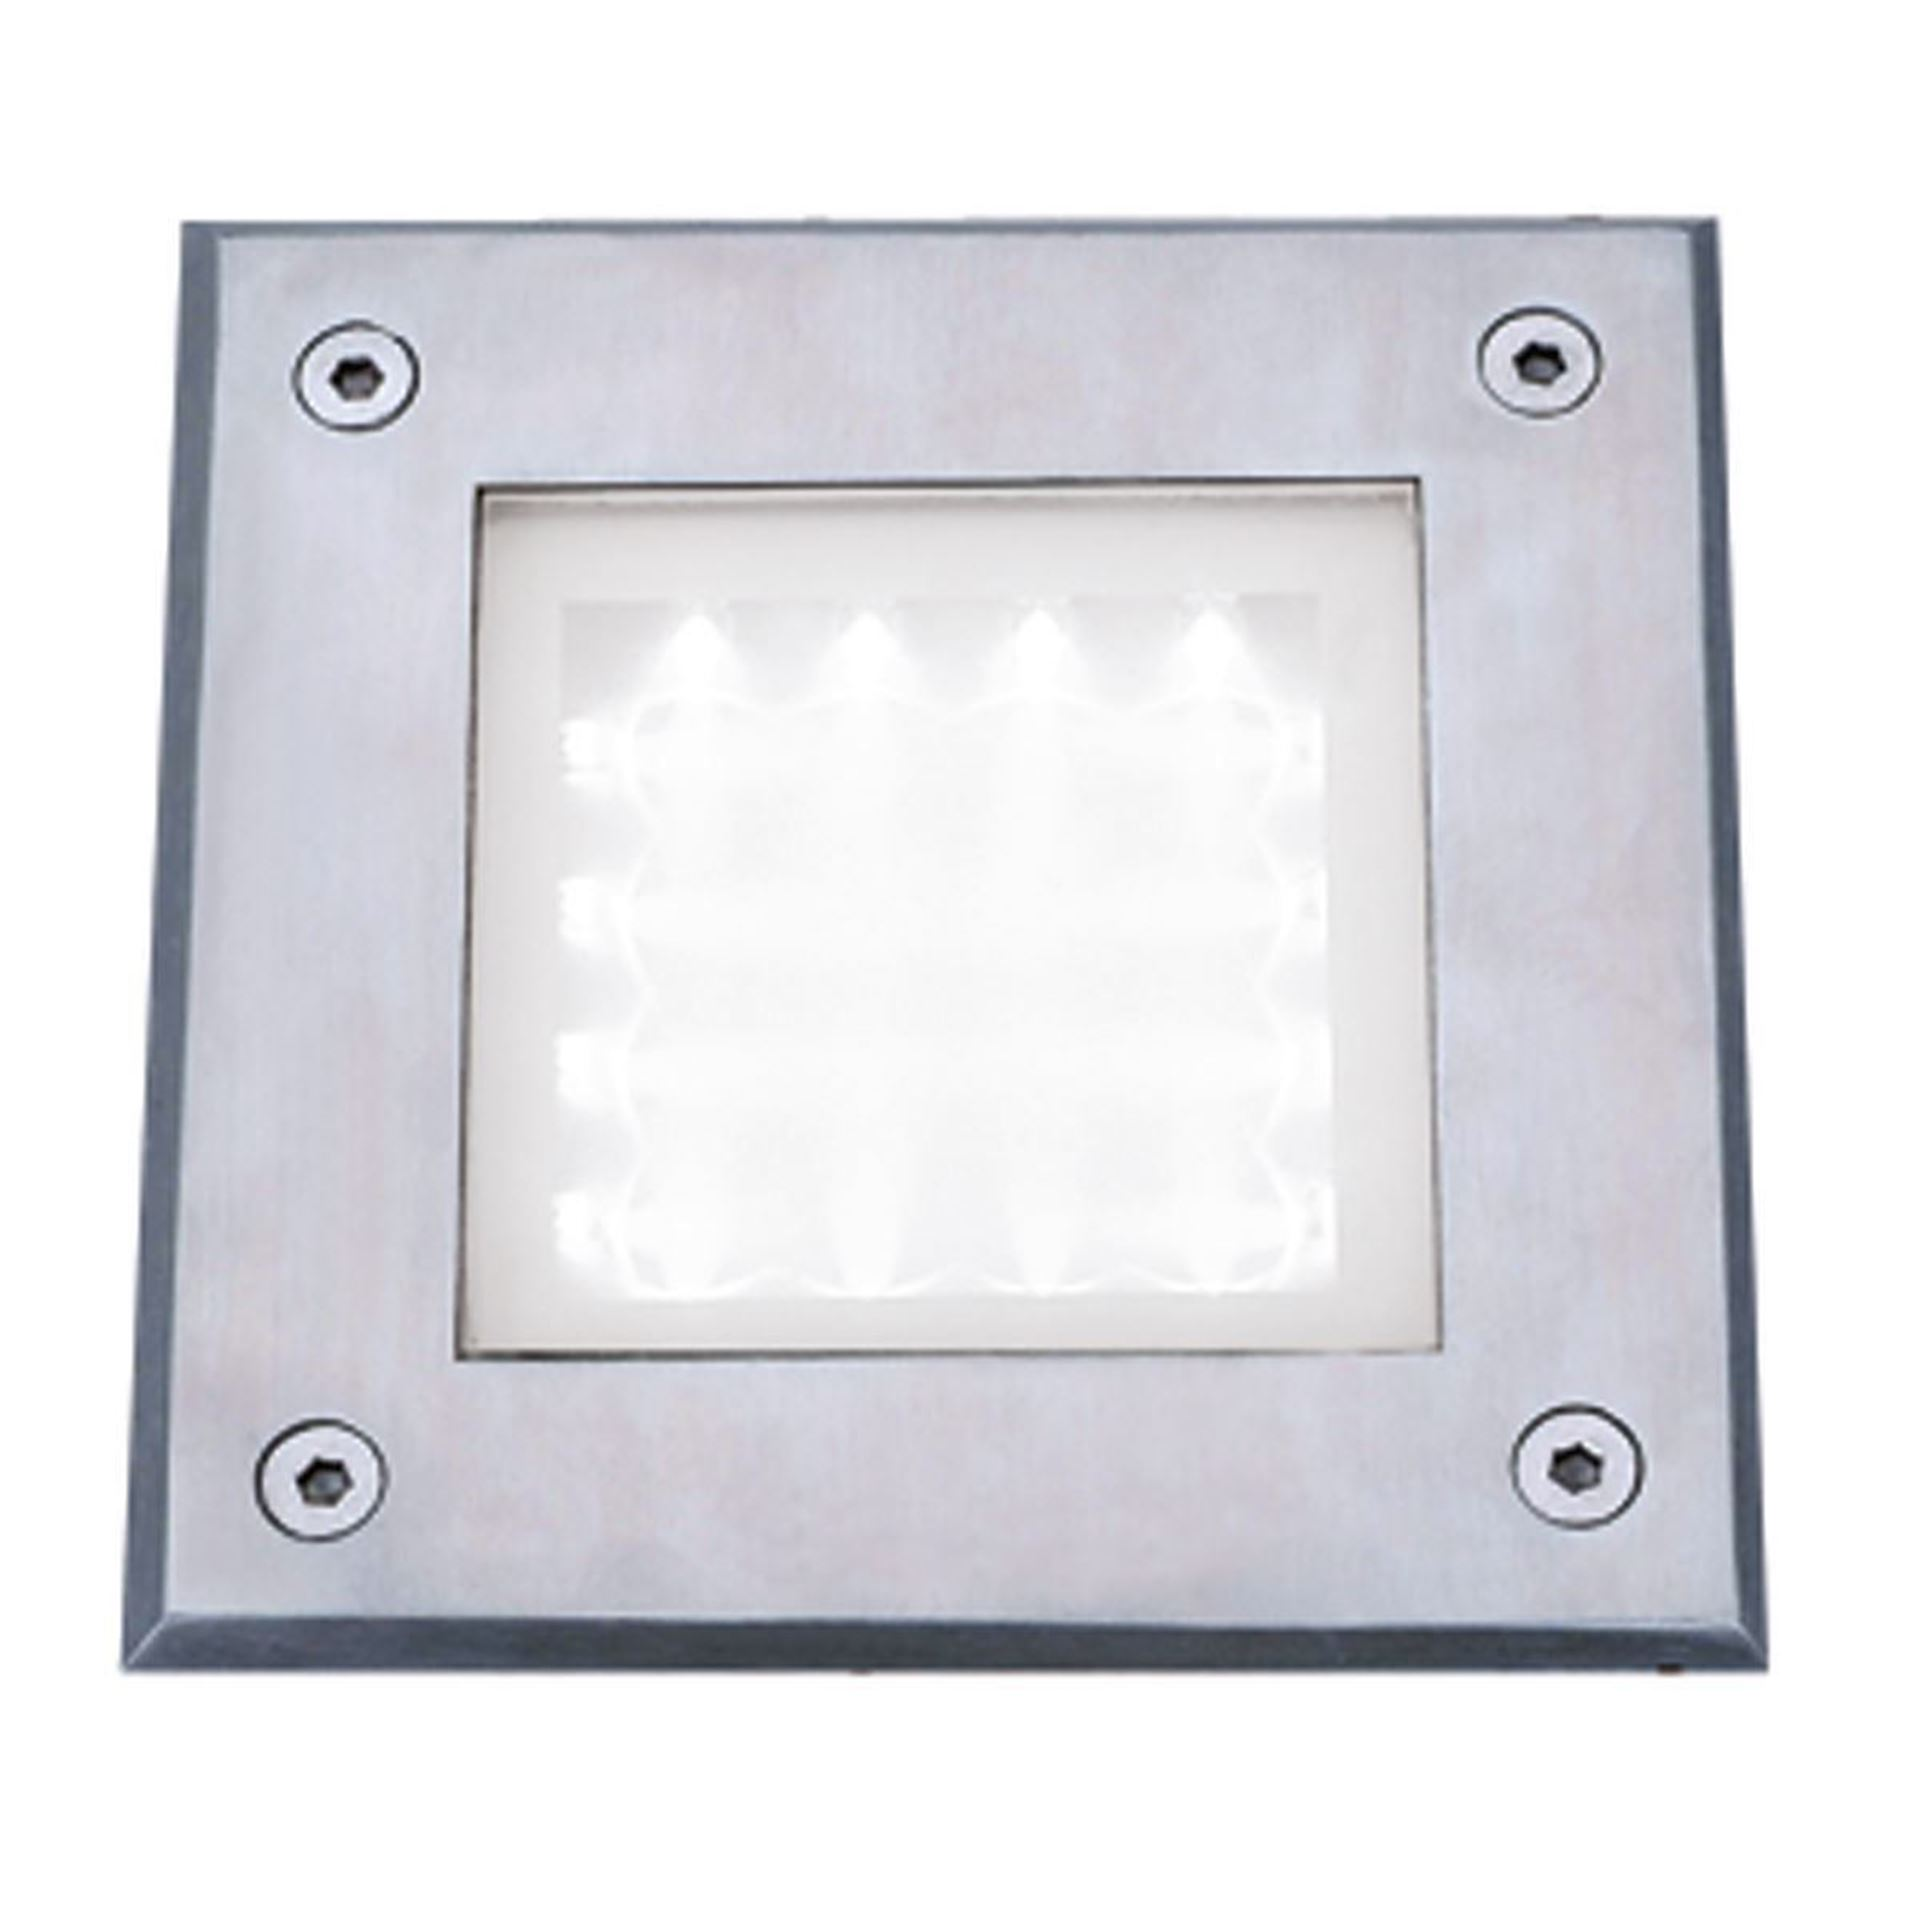 STAINLESS STEEL IP68 16 LED RECESSED SQUARE WALKOVER WITH WHITE LED LIGHT 9909WH